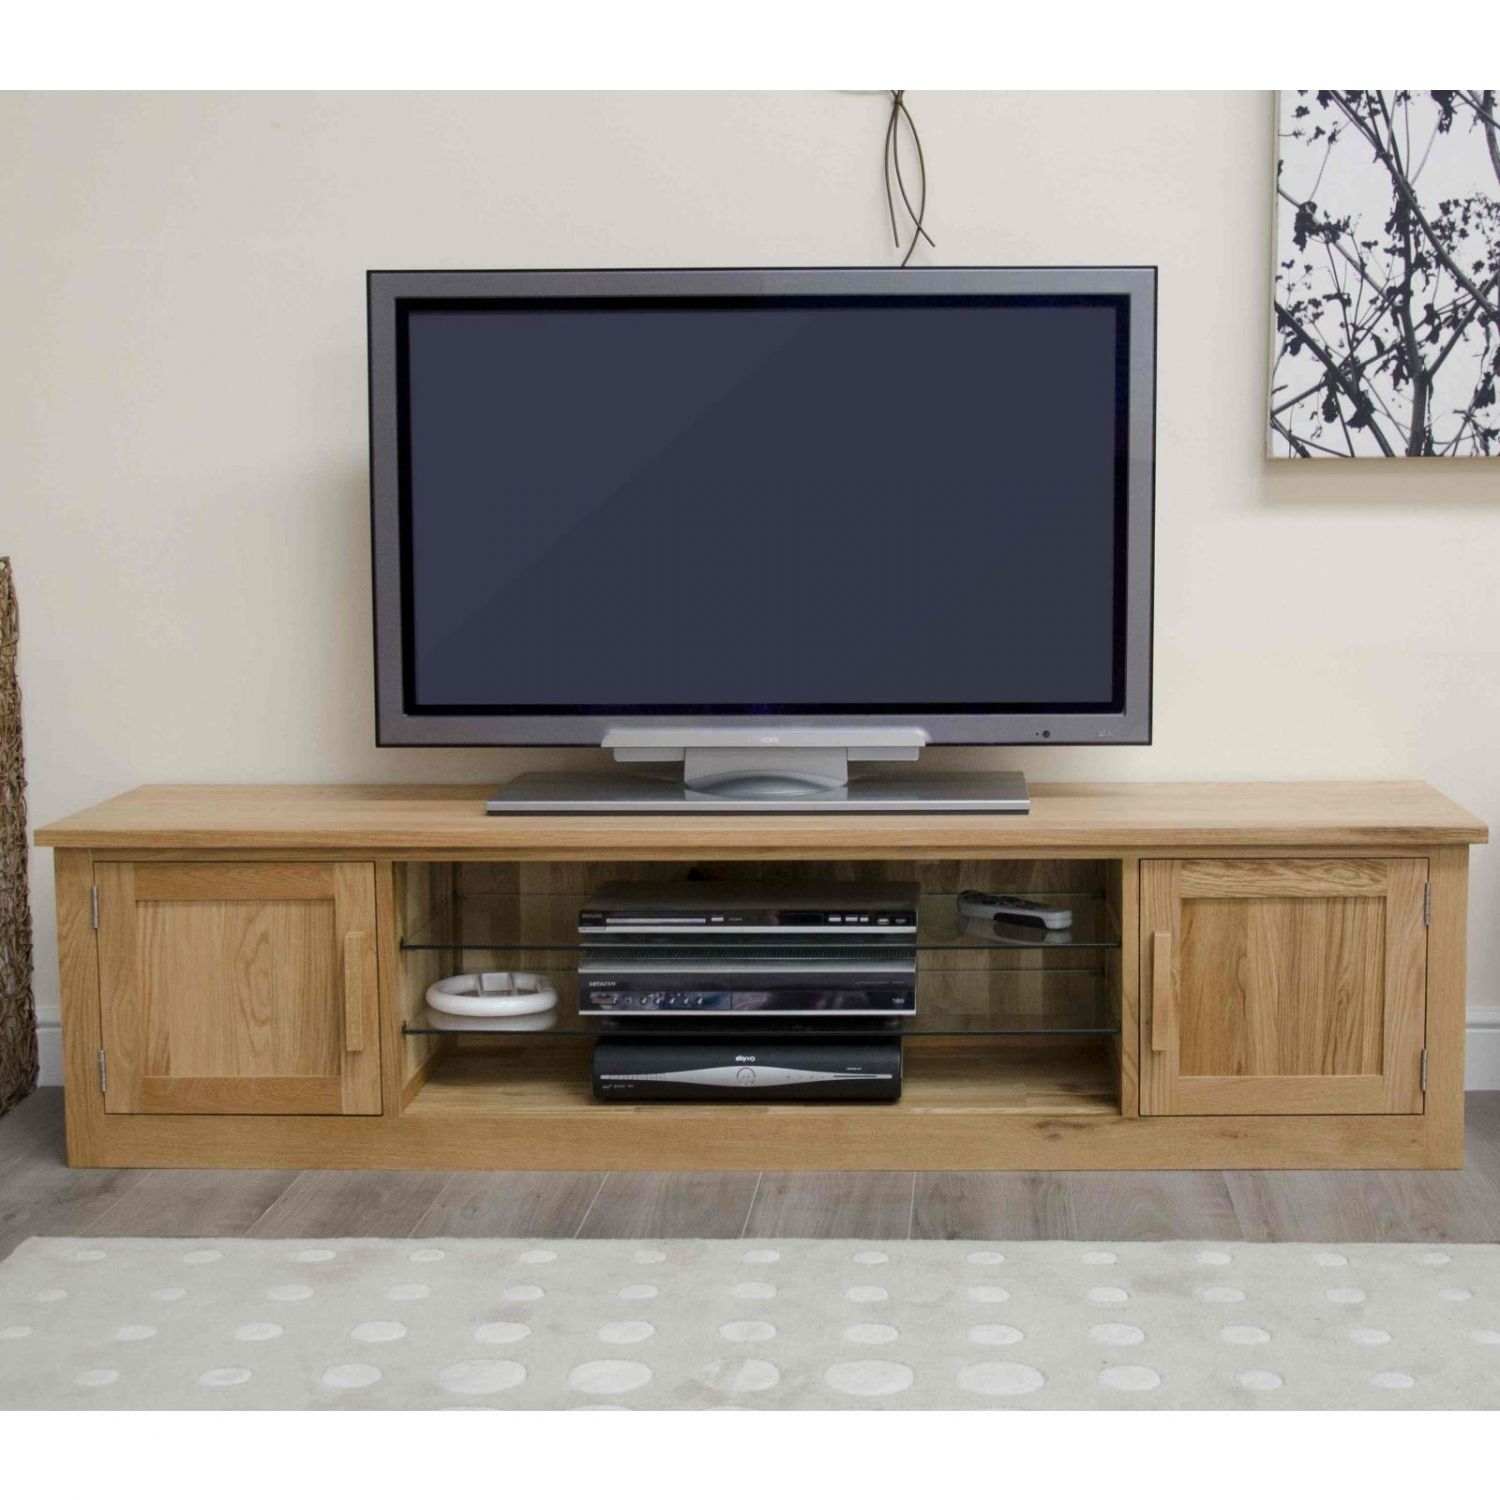 Arden solid oak living room furniture large widescreen tv for Tv room furniture